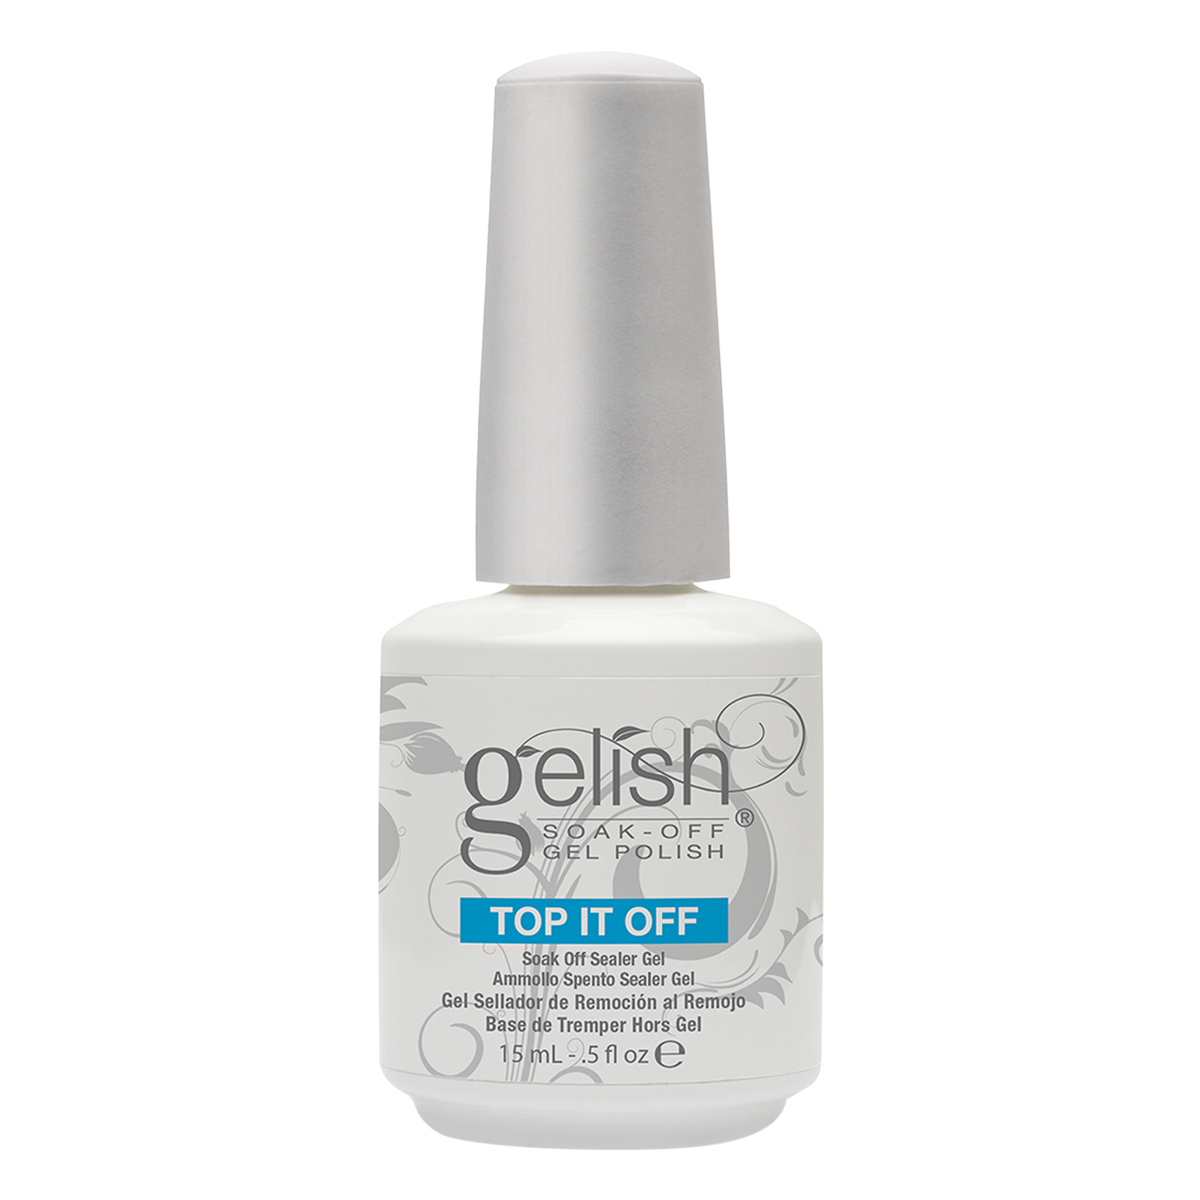 Sơn Móng Tay Gel Gelish Top-It-Off Soak Off Sealer Gel (15ml)